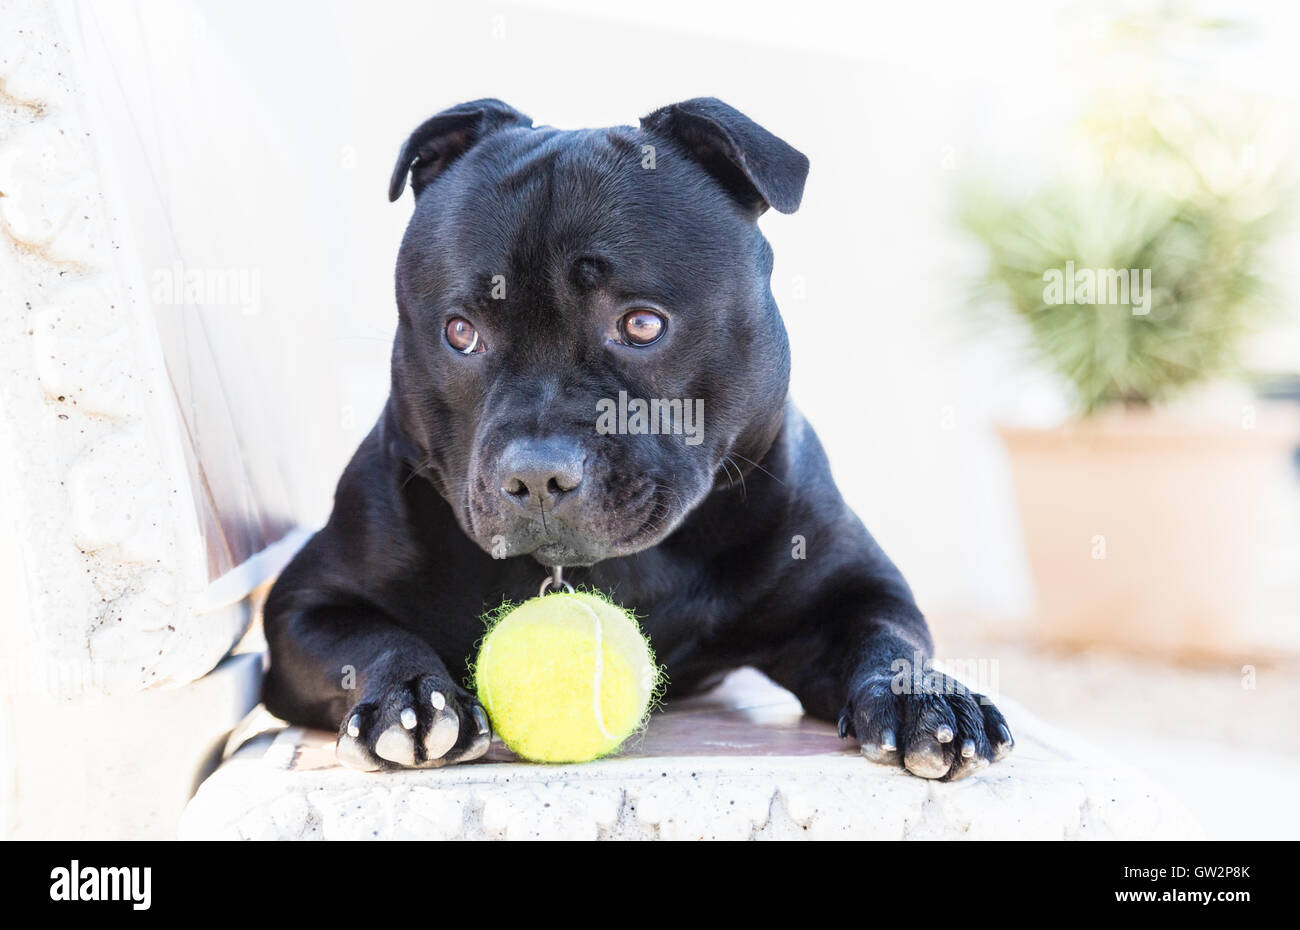 Young Staffordshire Bull Terrier dog lying on a bench with appealing puppy dog eyes, his eyebrows are raised slightly. - Stock Image